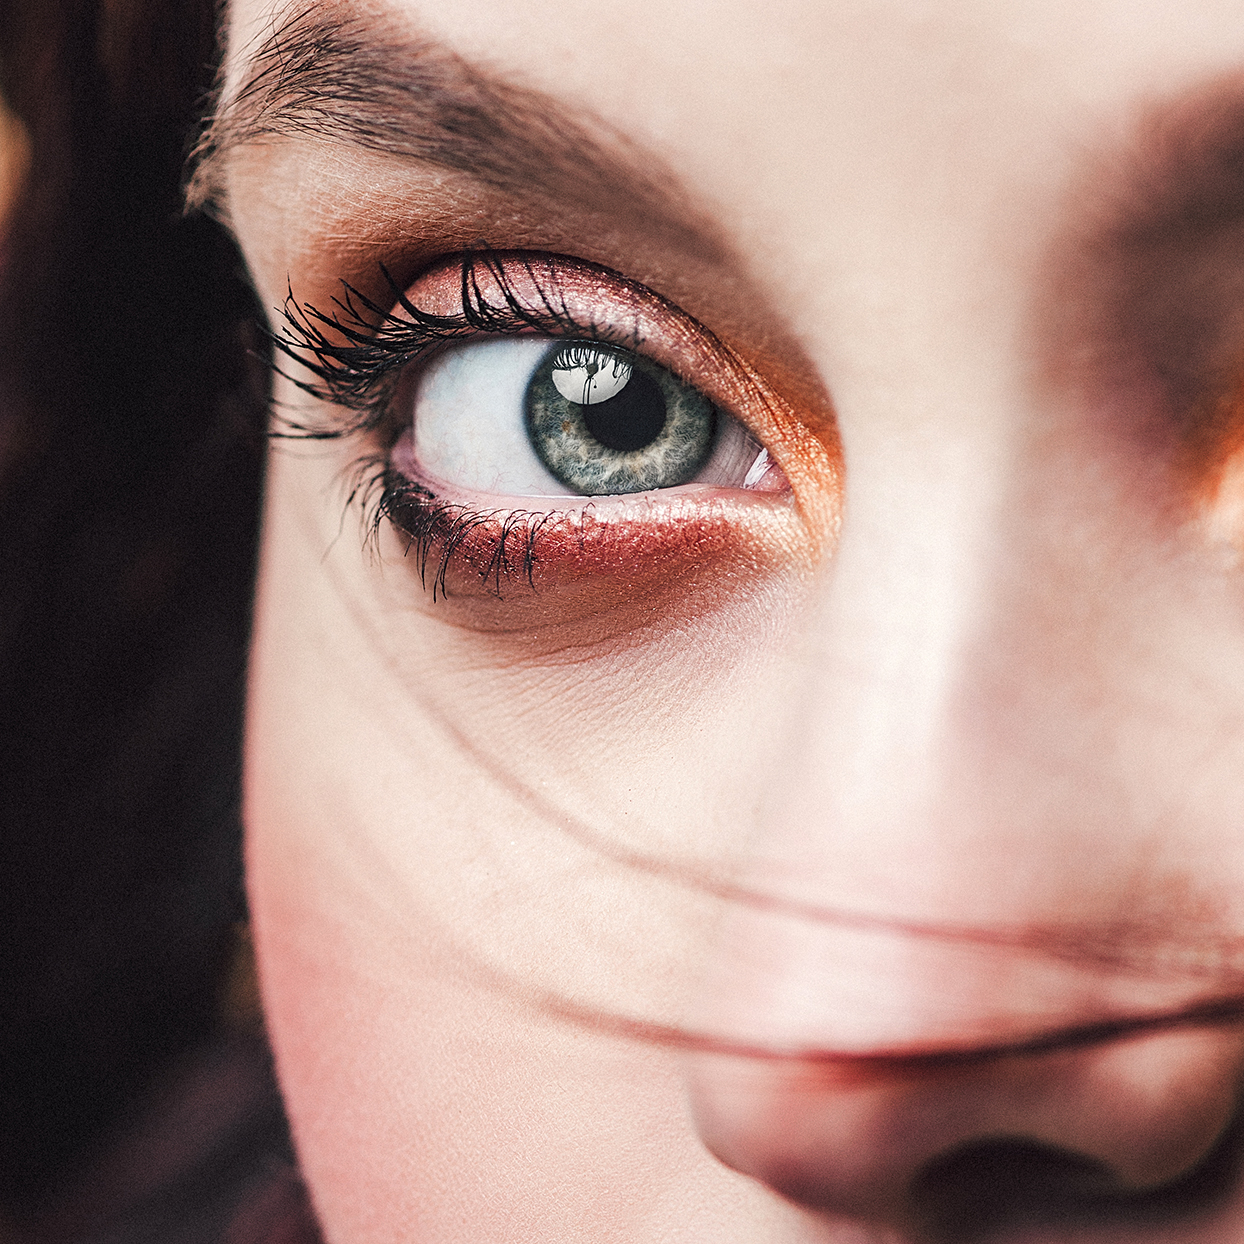 Woman with green eyes